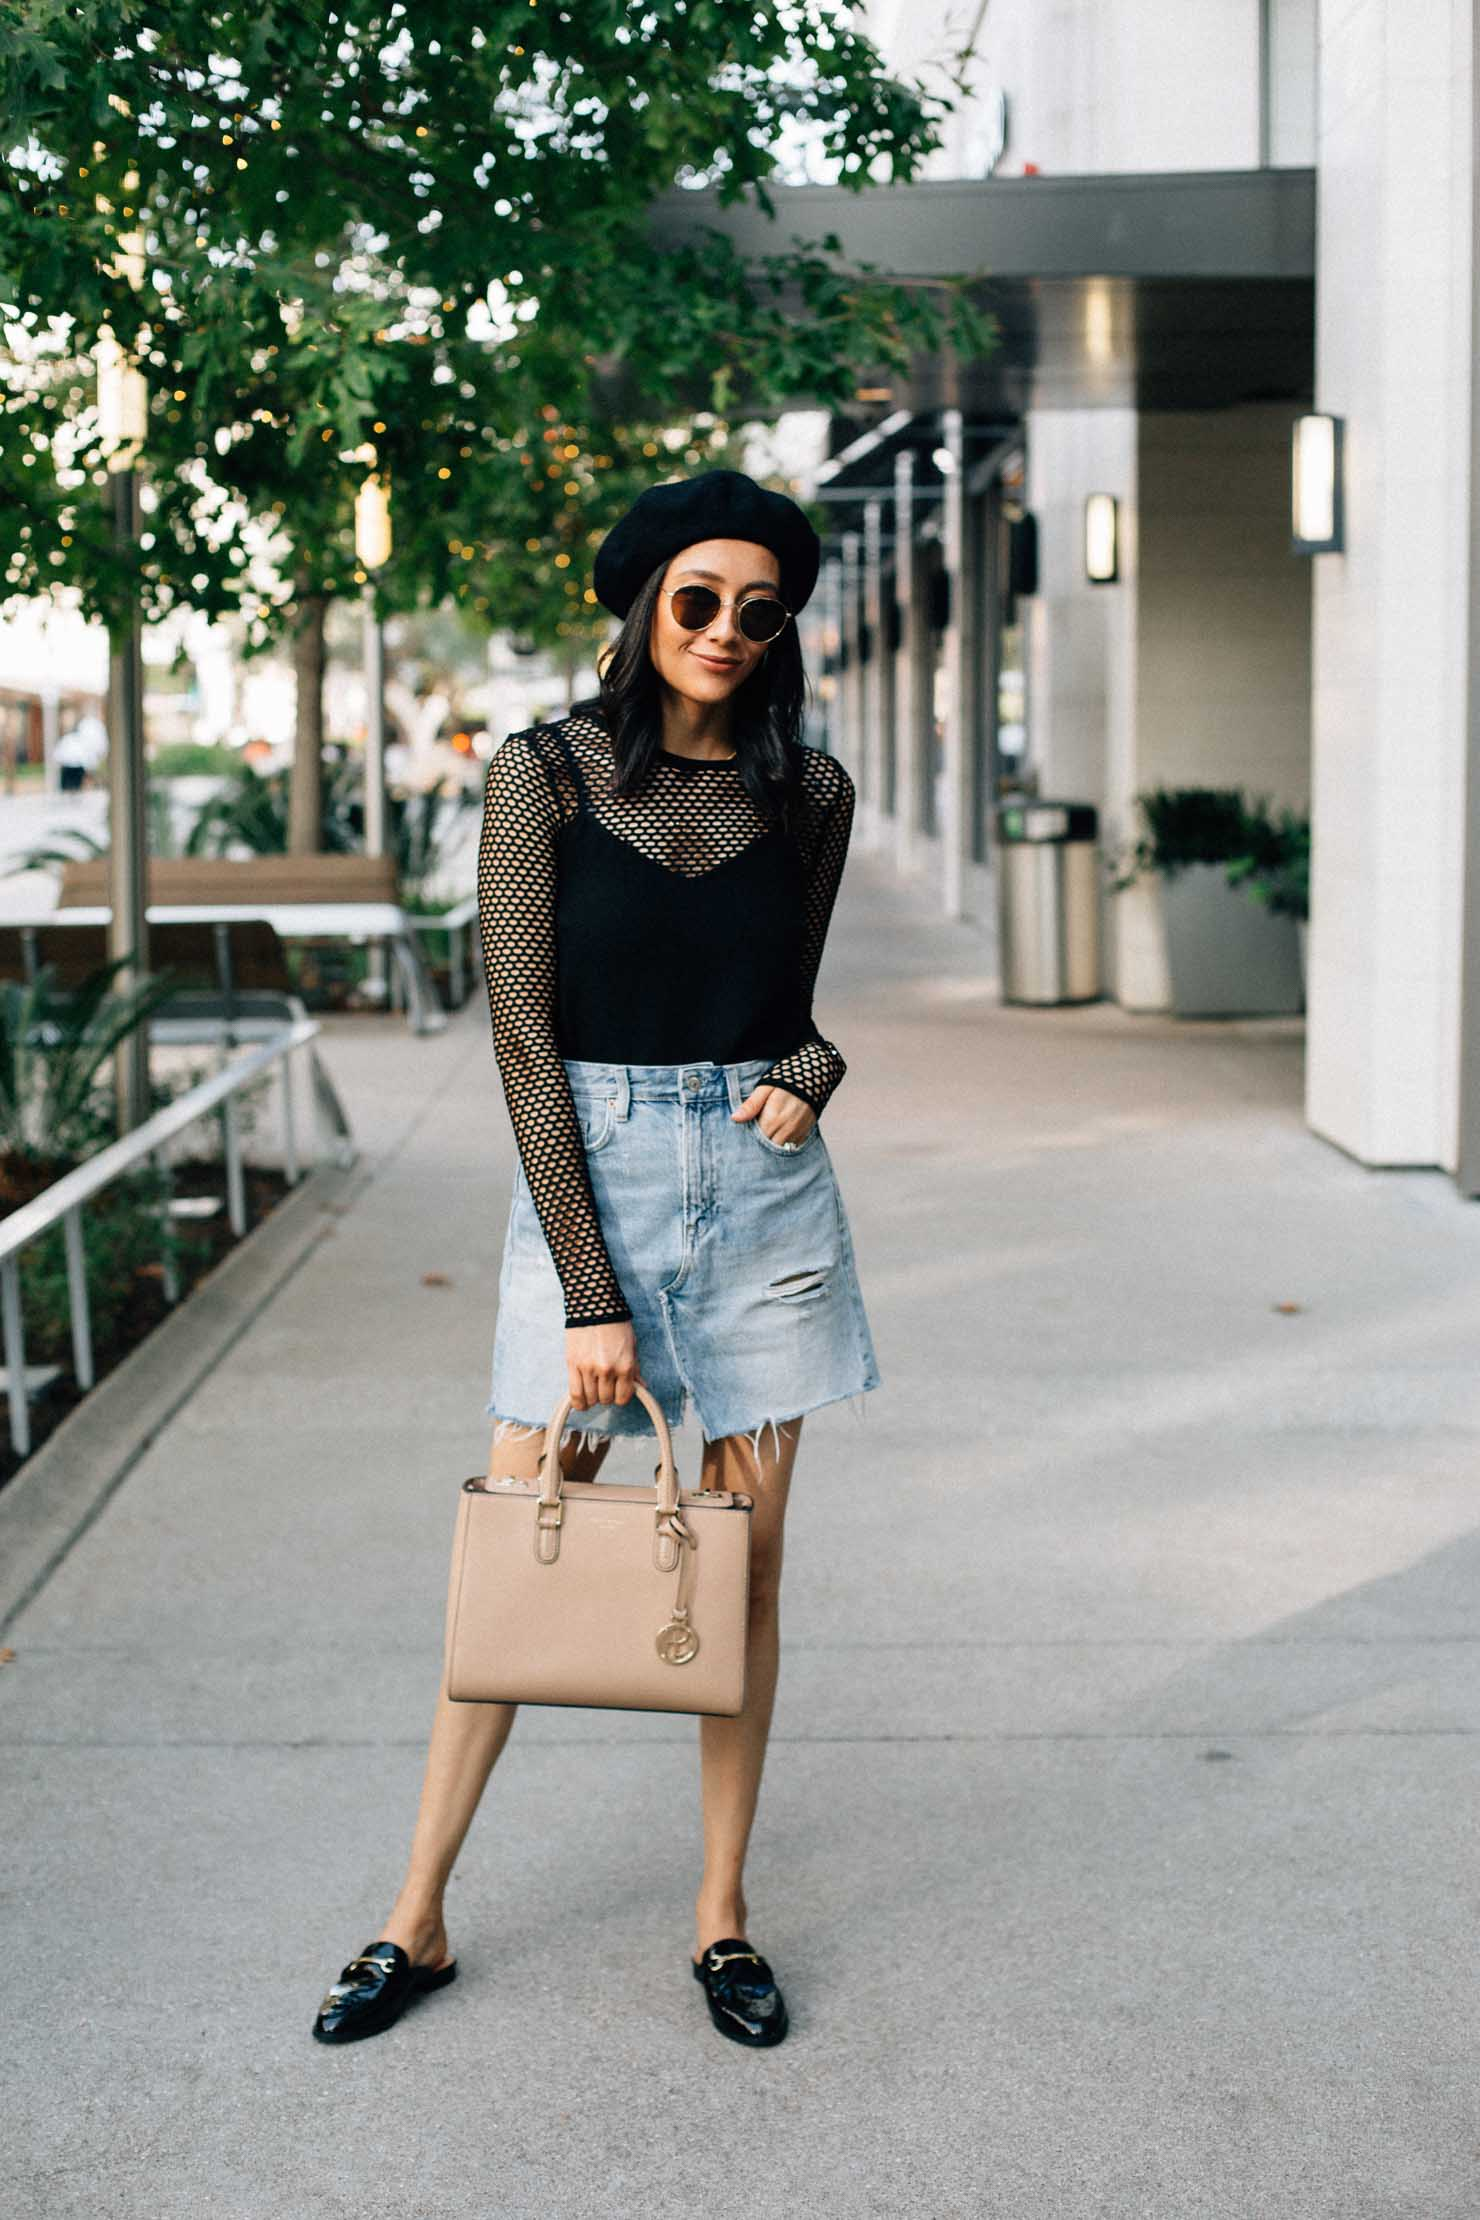 Lilly Beltran of Daily Craving in a casual fall outfit with a black mesh top, a denim skirt, loafer mules and a black beret